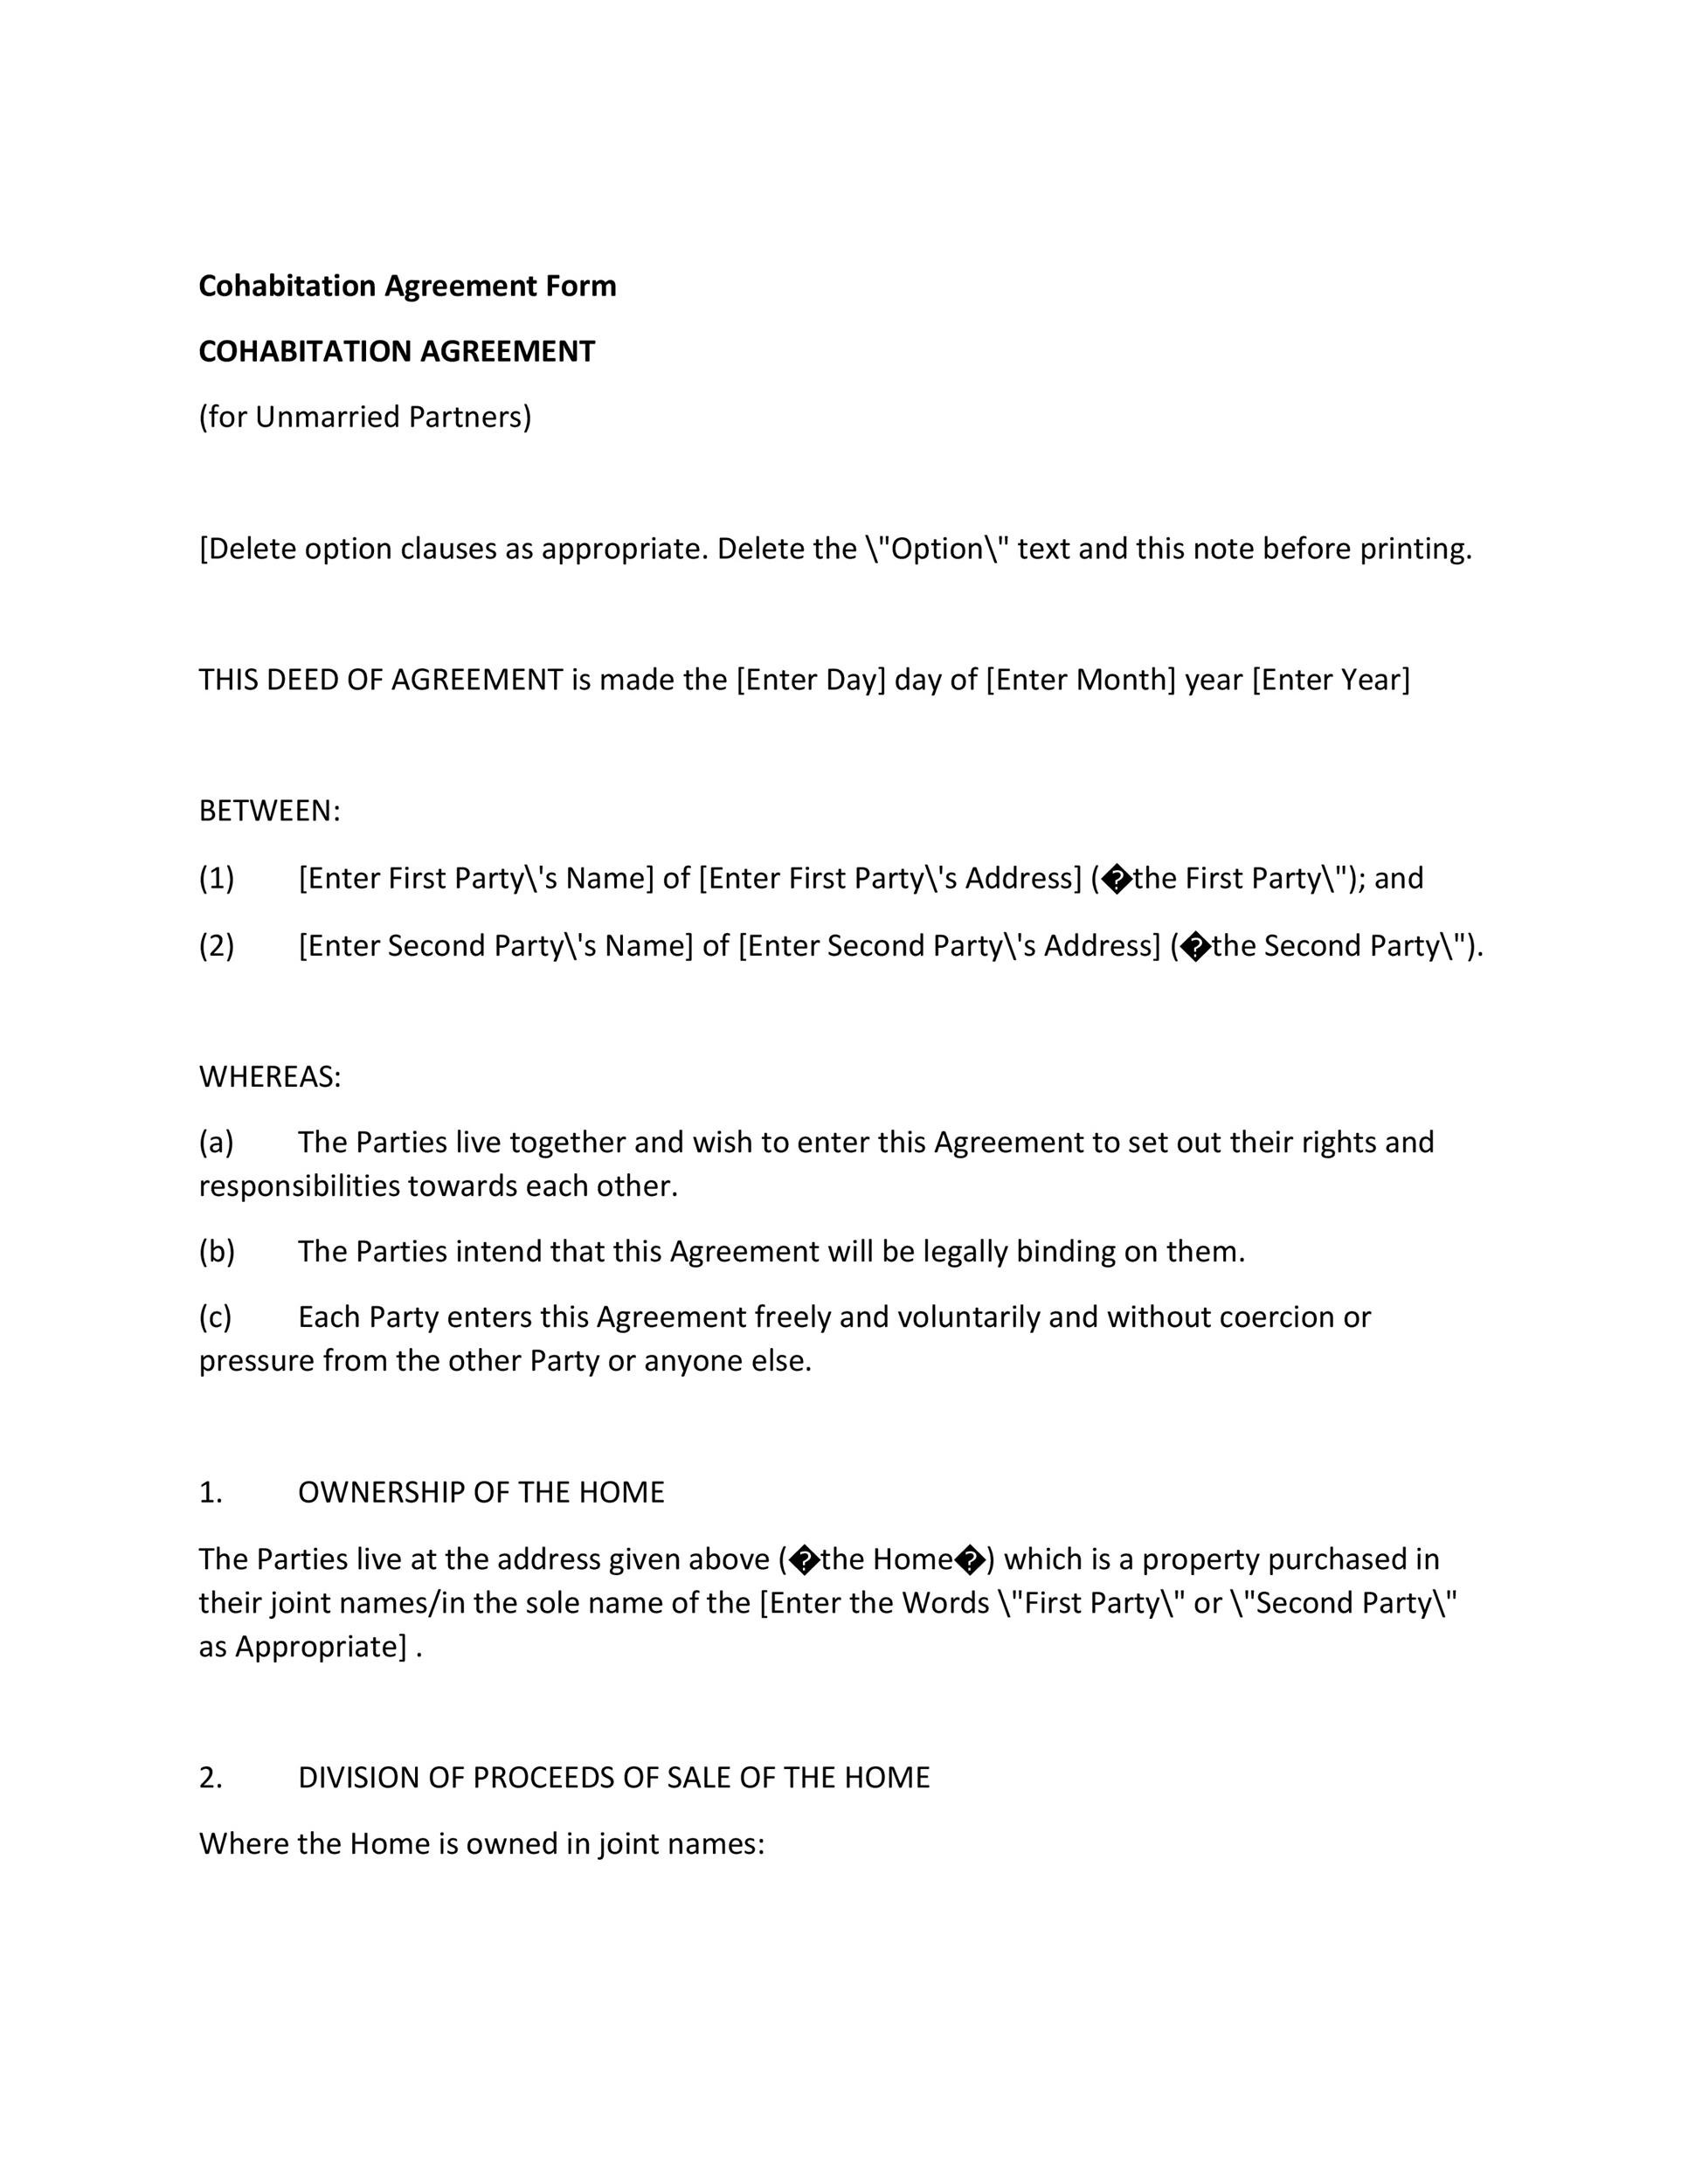 Free cohabitation agreement template 10